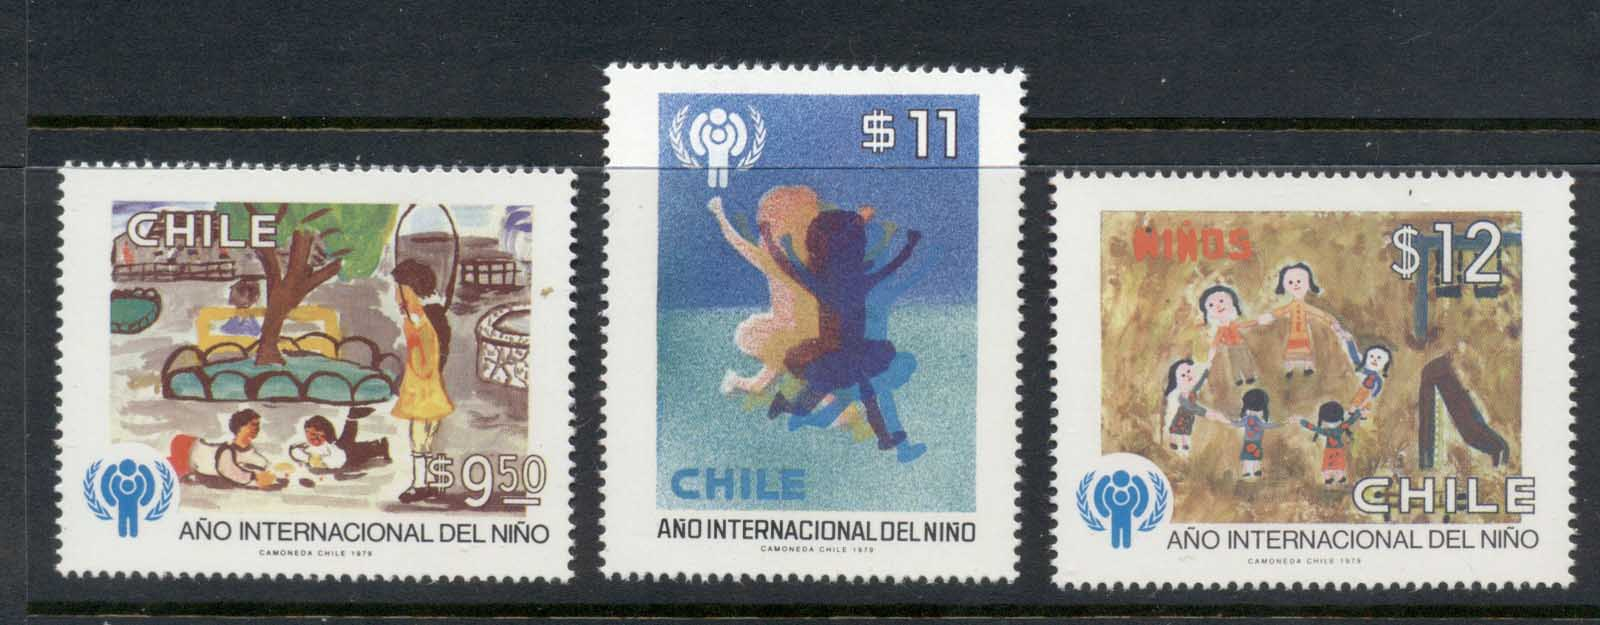 Chile 1979 IYC International year of the Child MUH